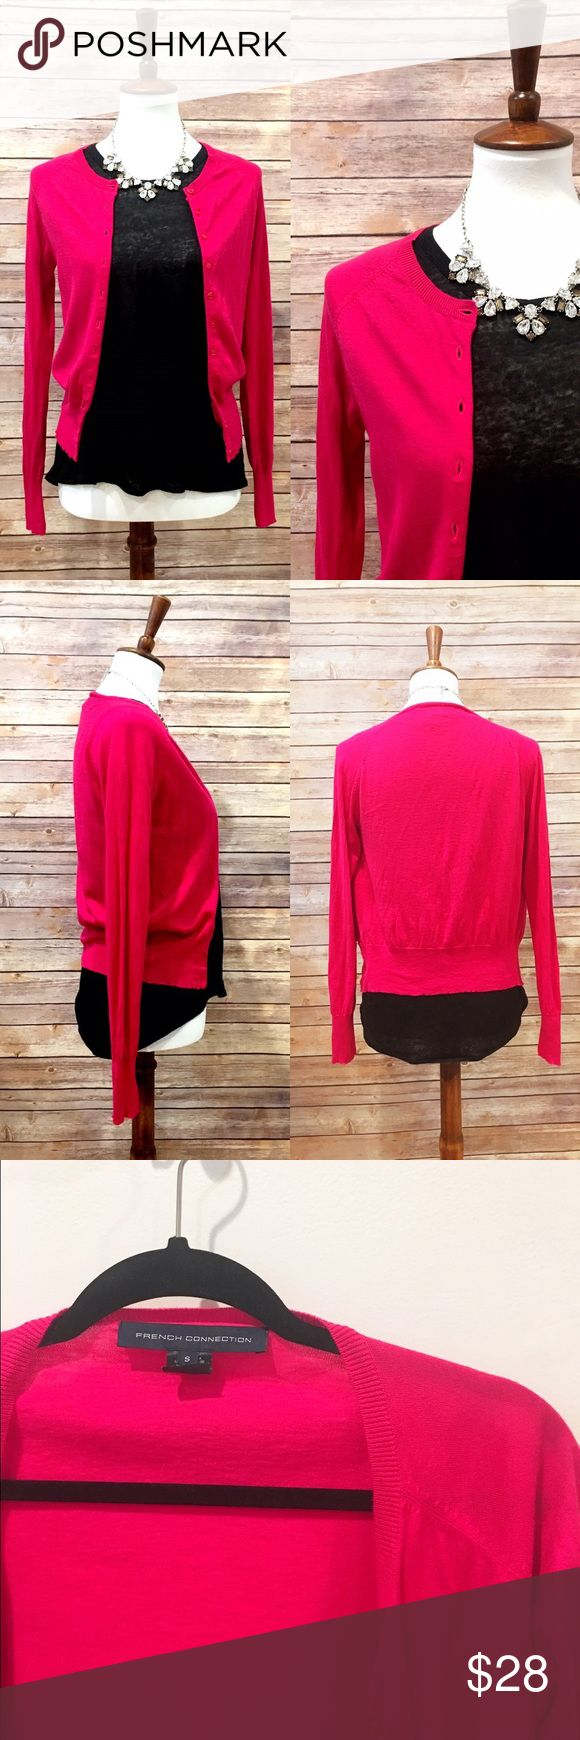 """French Connection lightweight pink cardigan Cute and lightweight cardigan from French Connection. No condition issues, gently worn. Cotton/viscose/wool. Length from shoulder is about 20.5"""". Armpit to armpit flat is about 17"""". French Connection Sweaters Cardigans"""